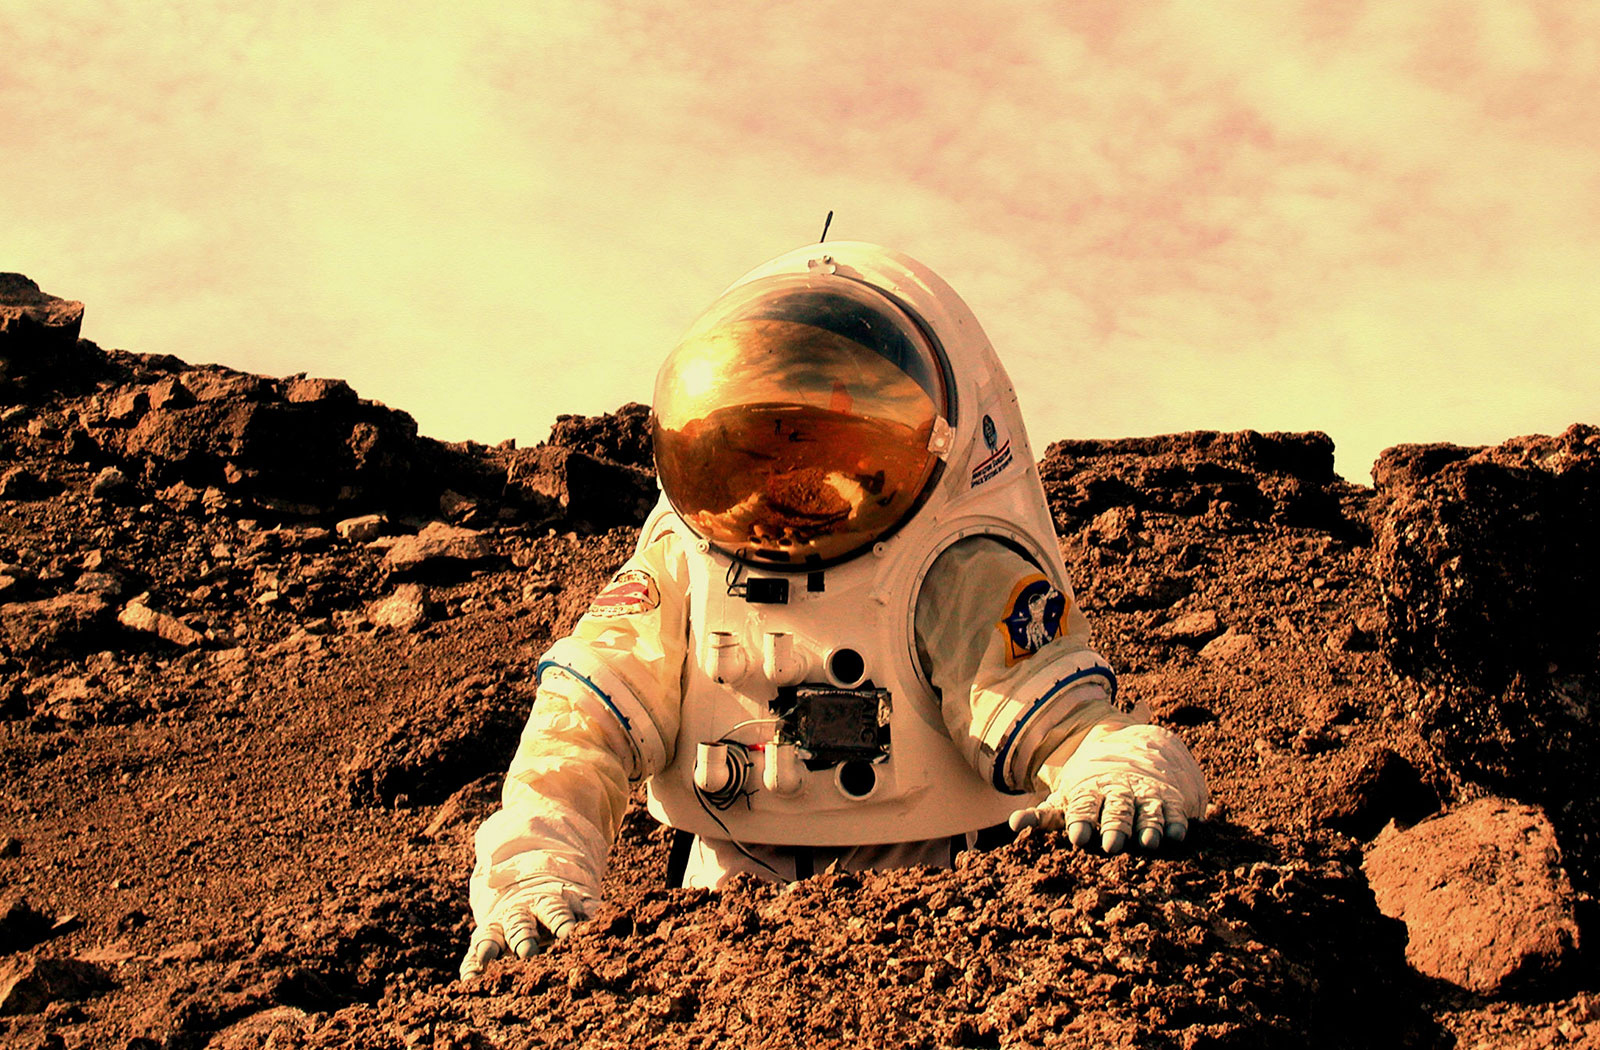 why we should send a manned mission to mars essay Debating manned moon missions  hoping to meet president bush's goal of sending humans back to the moon by 2020 and eventually on to mars we asked experts in science and space policy to discuss.